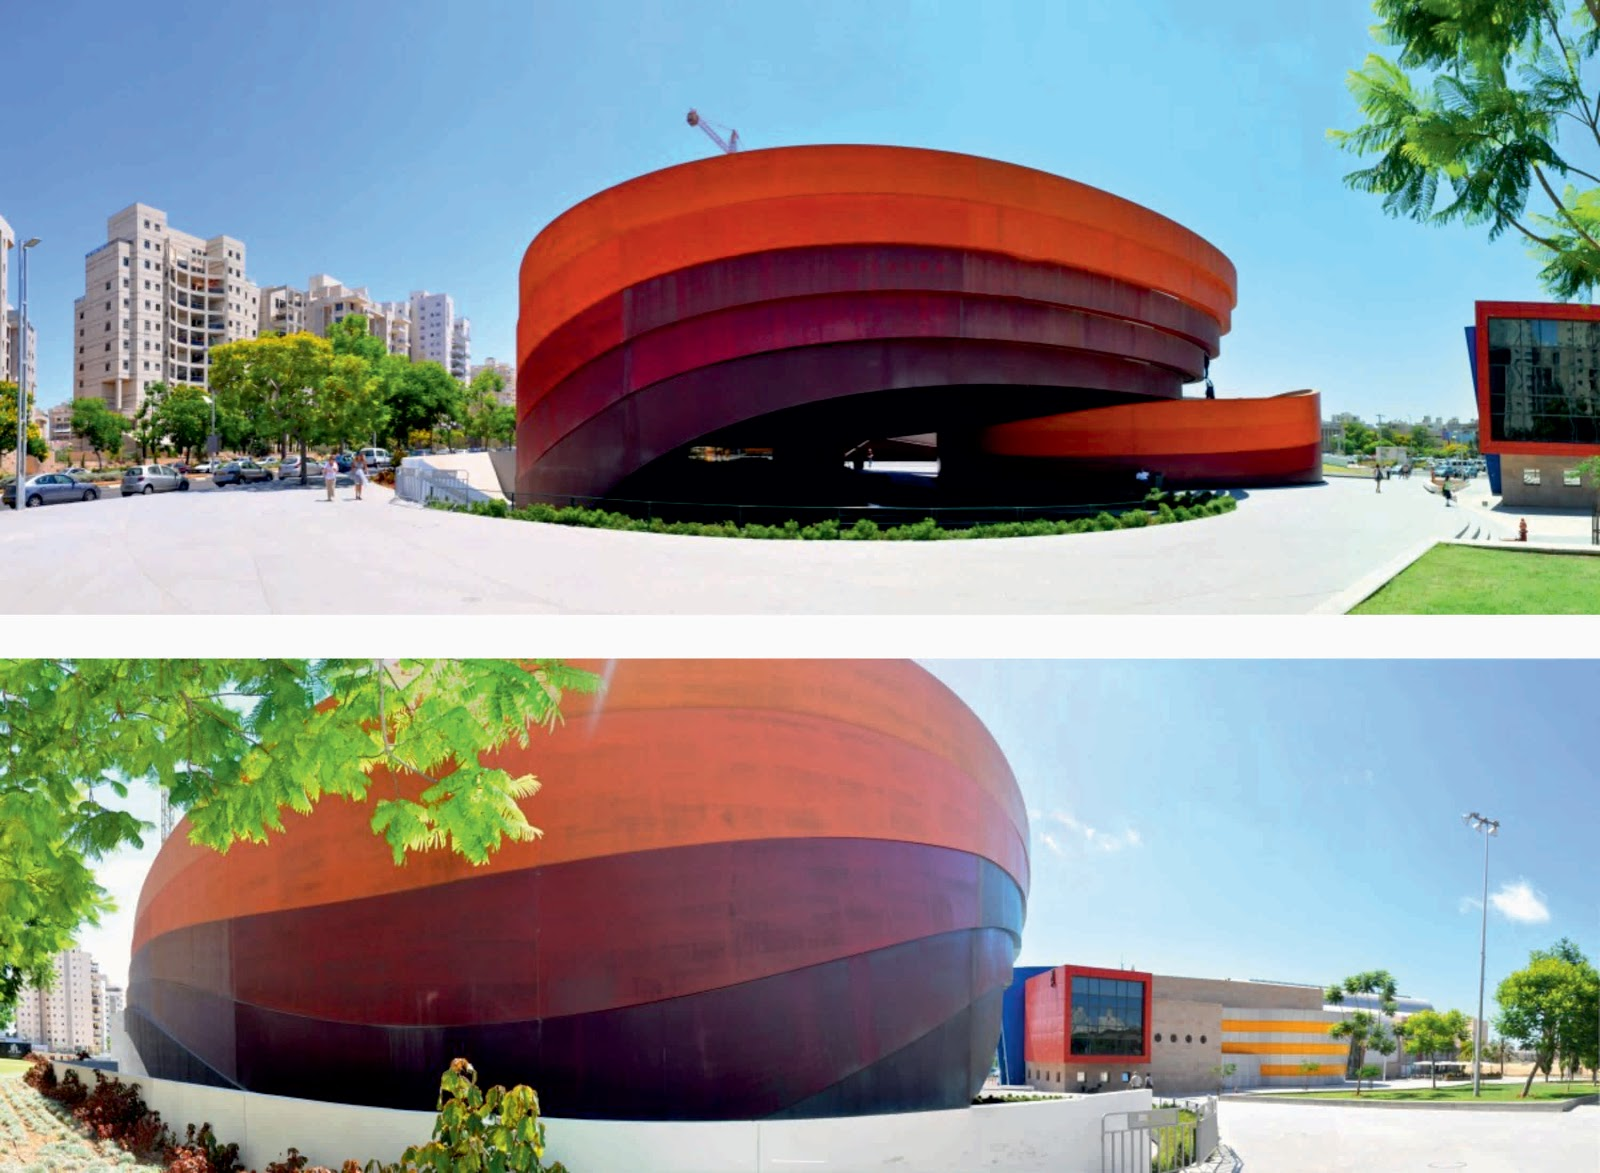 Design museum holon by ron arad architects for Architecture and design